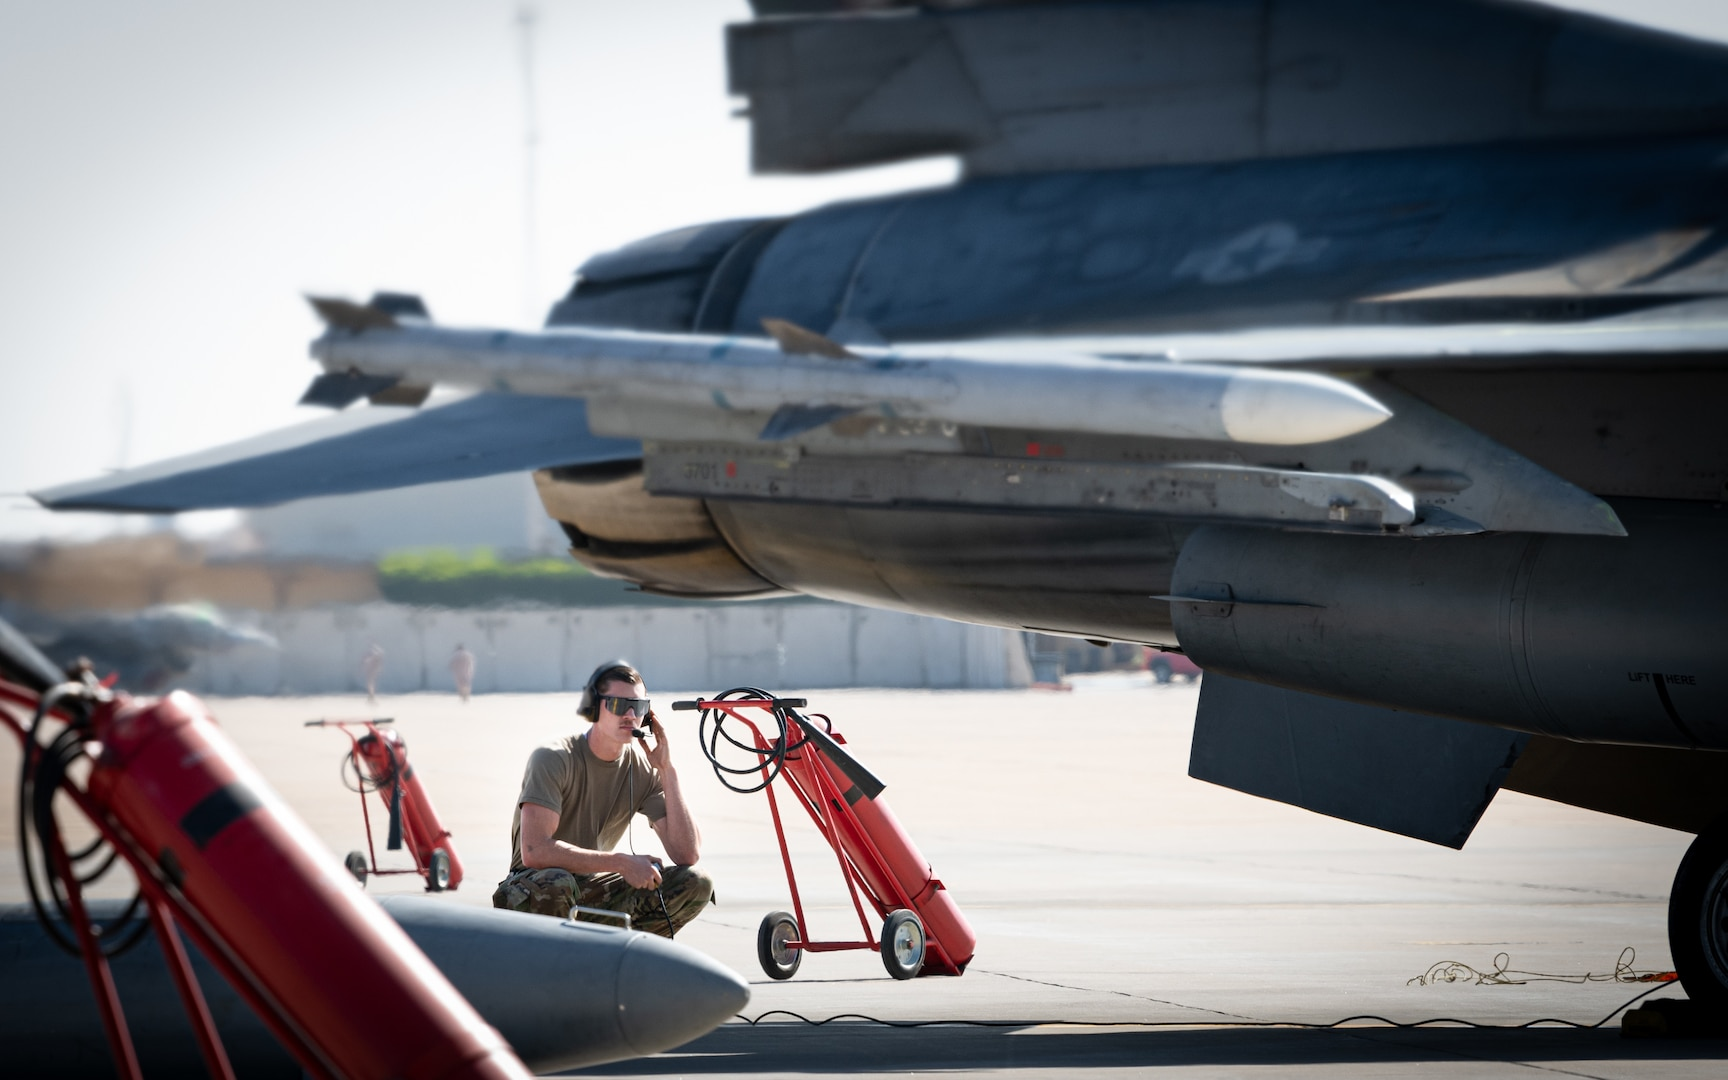 Senior Airman Lowe, 77th Expeditionary Fighter Generation Squadron crew chief, readies an F-16 Fighting Falcon for a mission during an Agile Combat Employment capstone event Feb. 27, 2021, at an airbase in the Kingdom of Saudi Arabia.